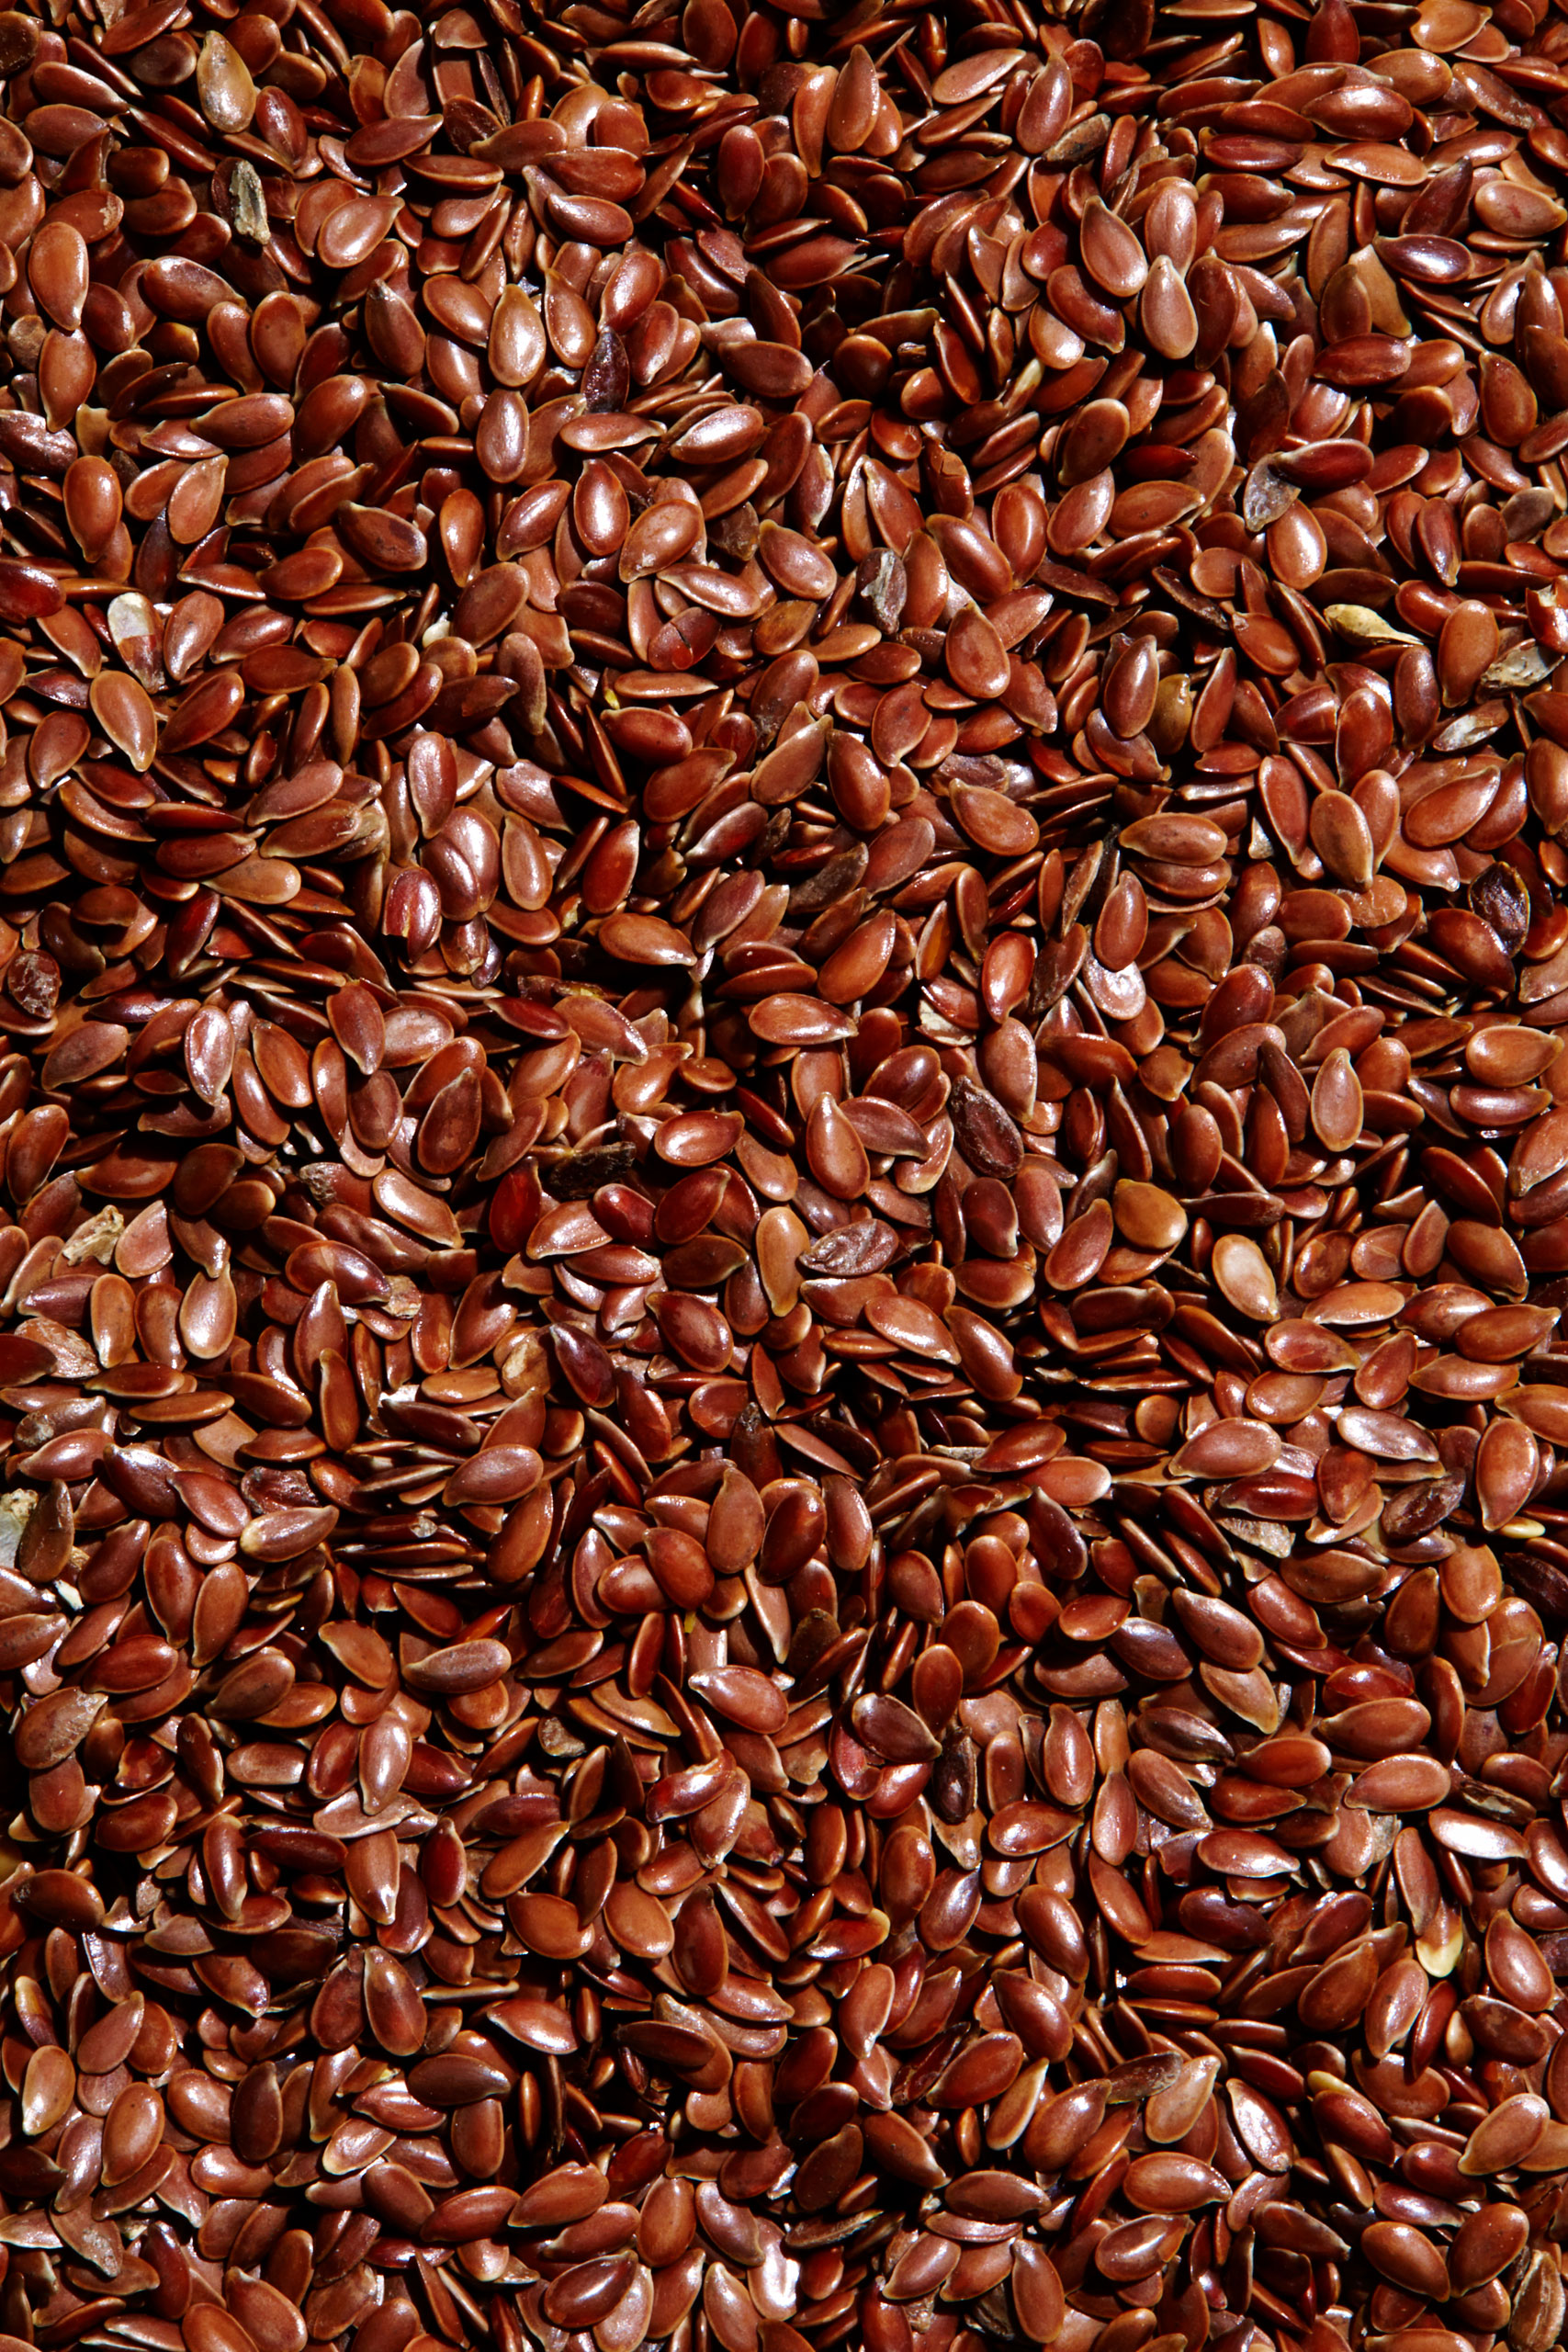 healthiest foods, health food, diet, nutrition, time.com stock, flax seeds